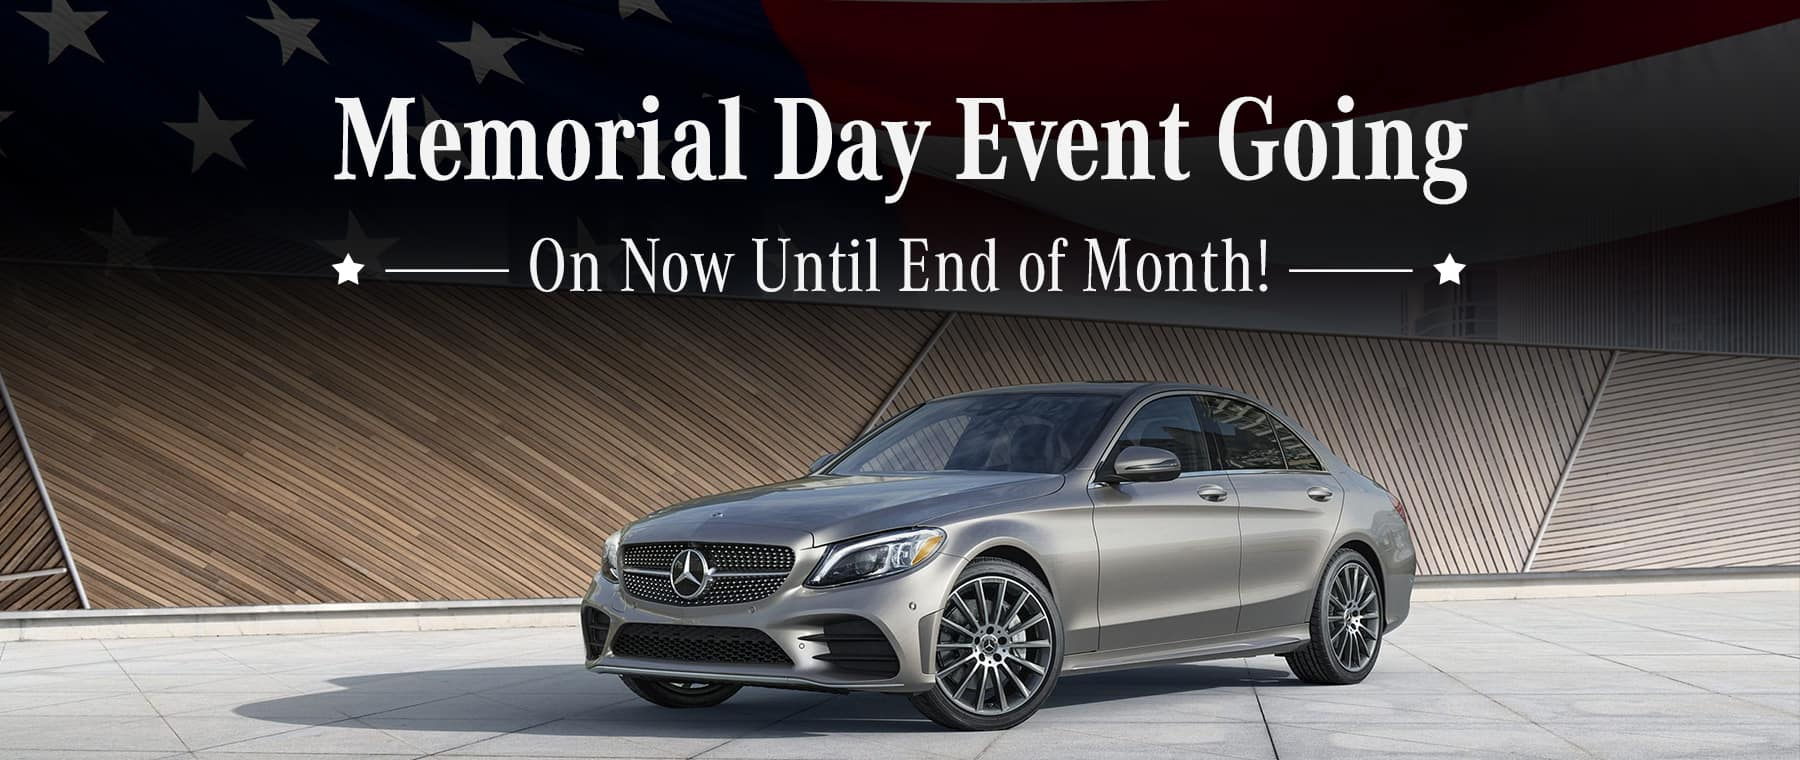 Memorial Day Event